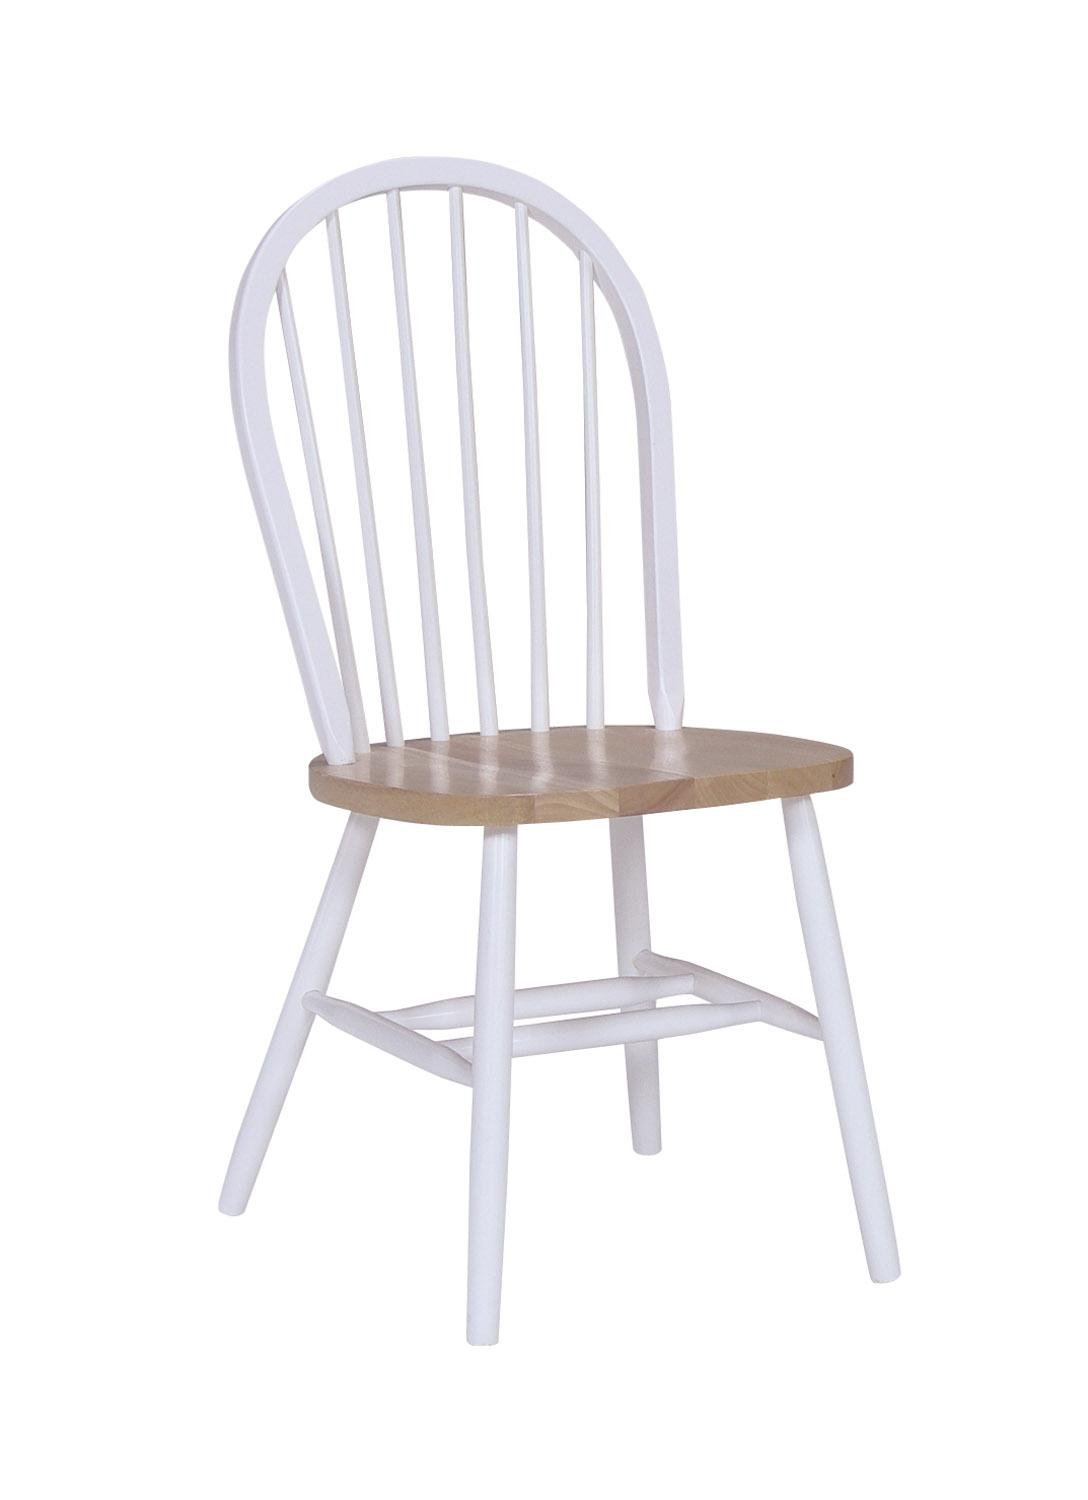 John Thomas Dining Essentials Windsor Dining Side Chair - Item Number: C02-112